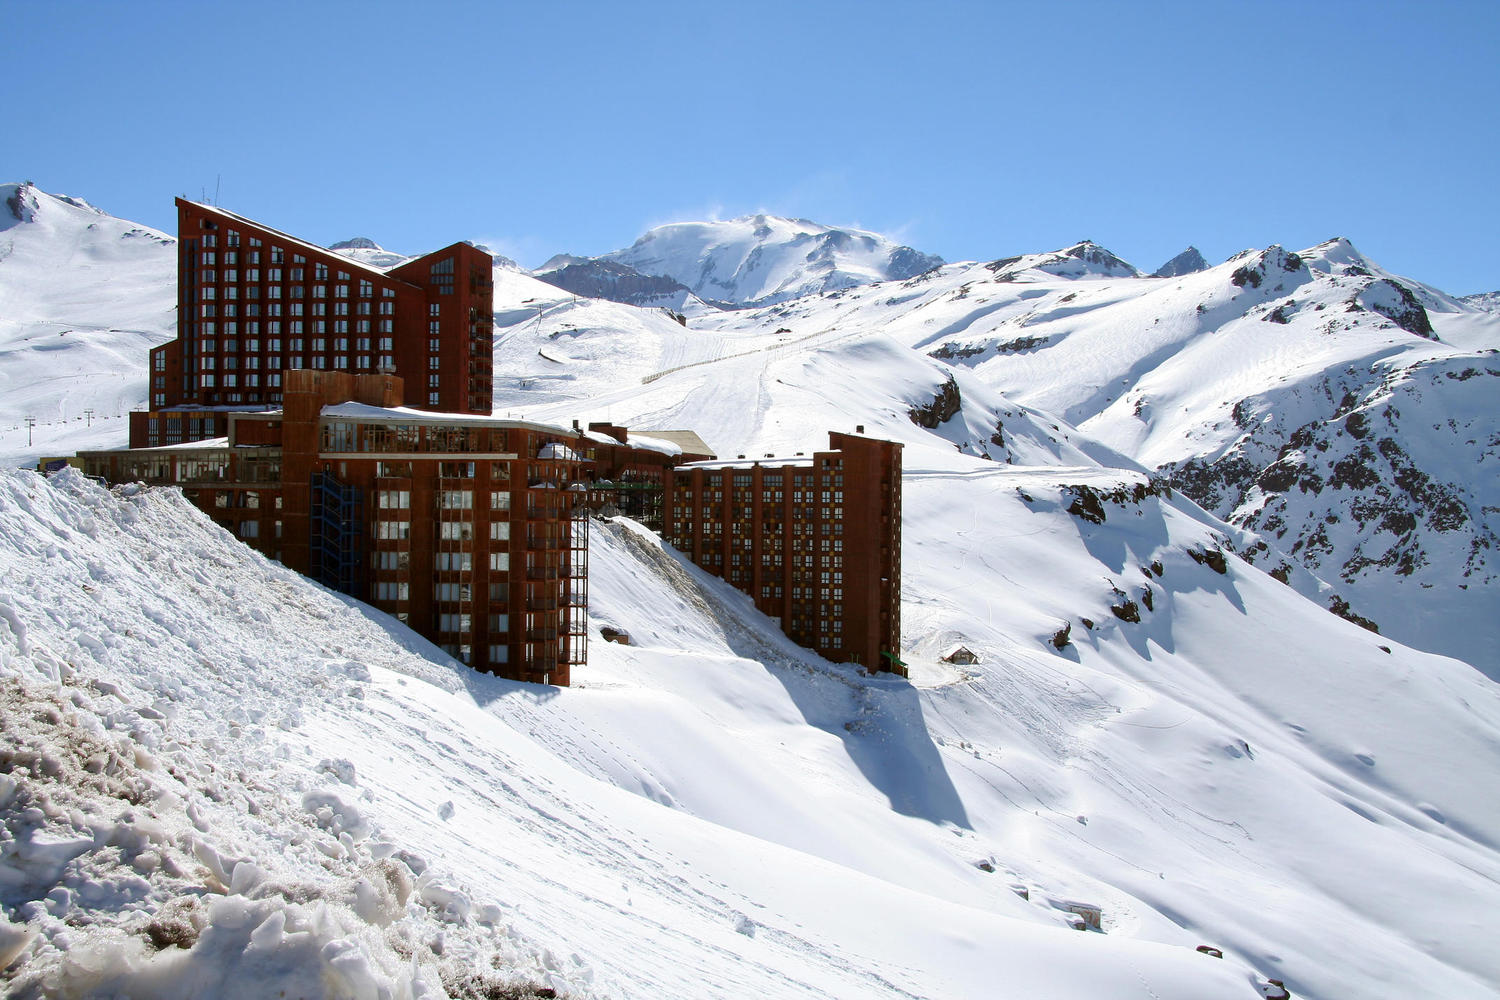 The Chilean ski resort of Valle Nevador